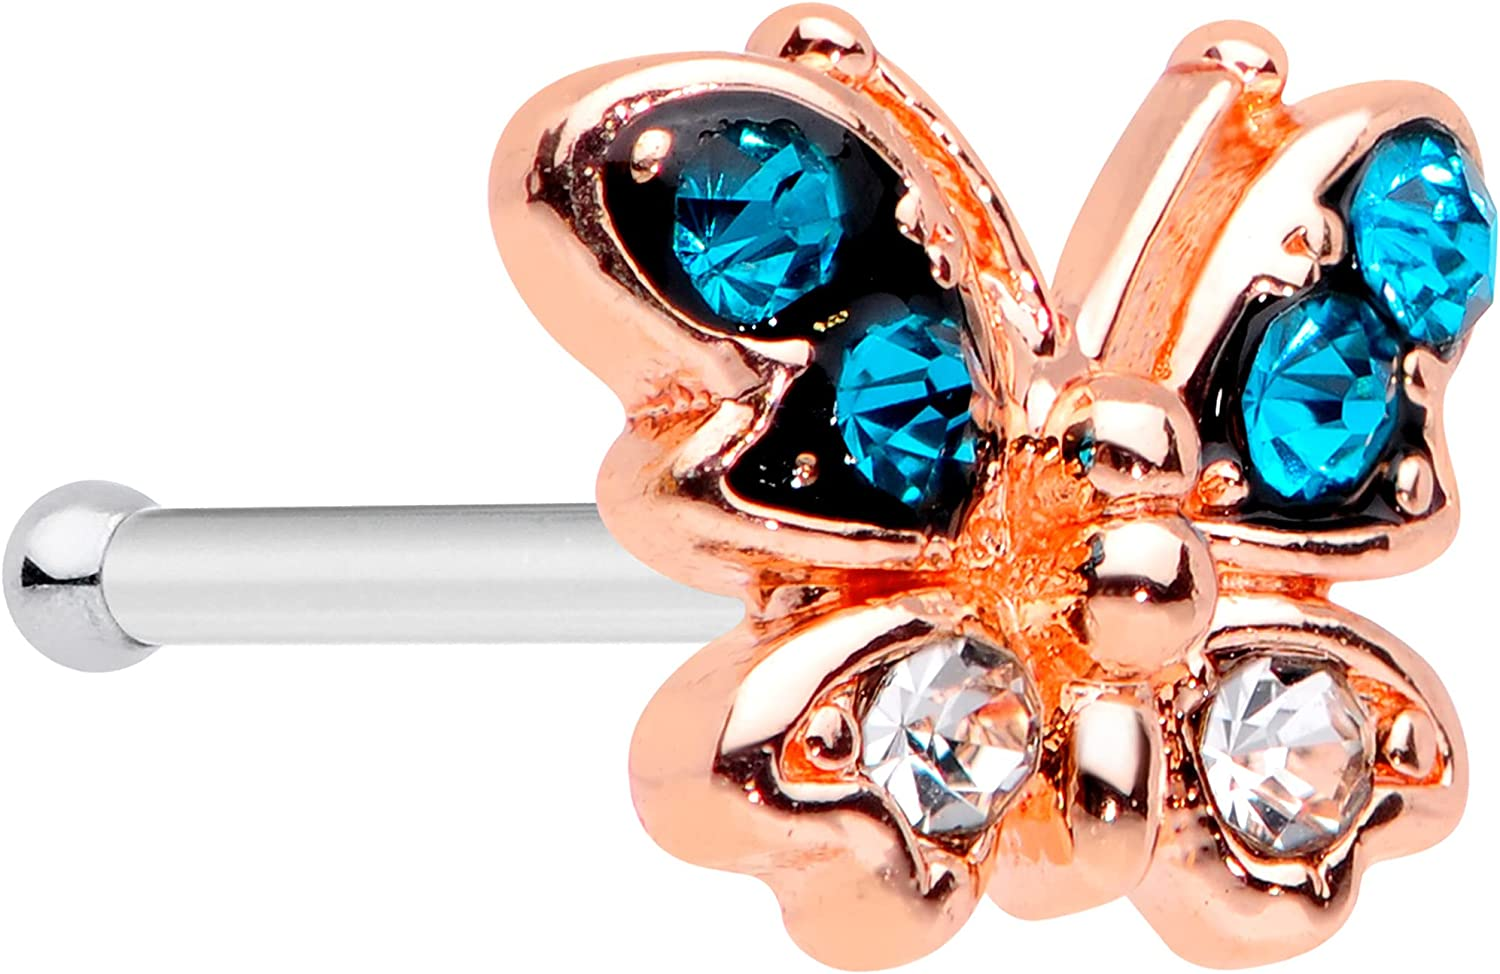 Body Candy Womens 20G 6mm Max 79% OFF Steel No We OFFer at cheap prices Stud Ring Nose Butterfly